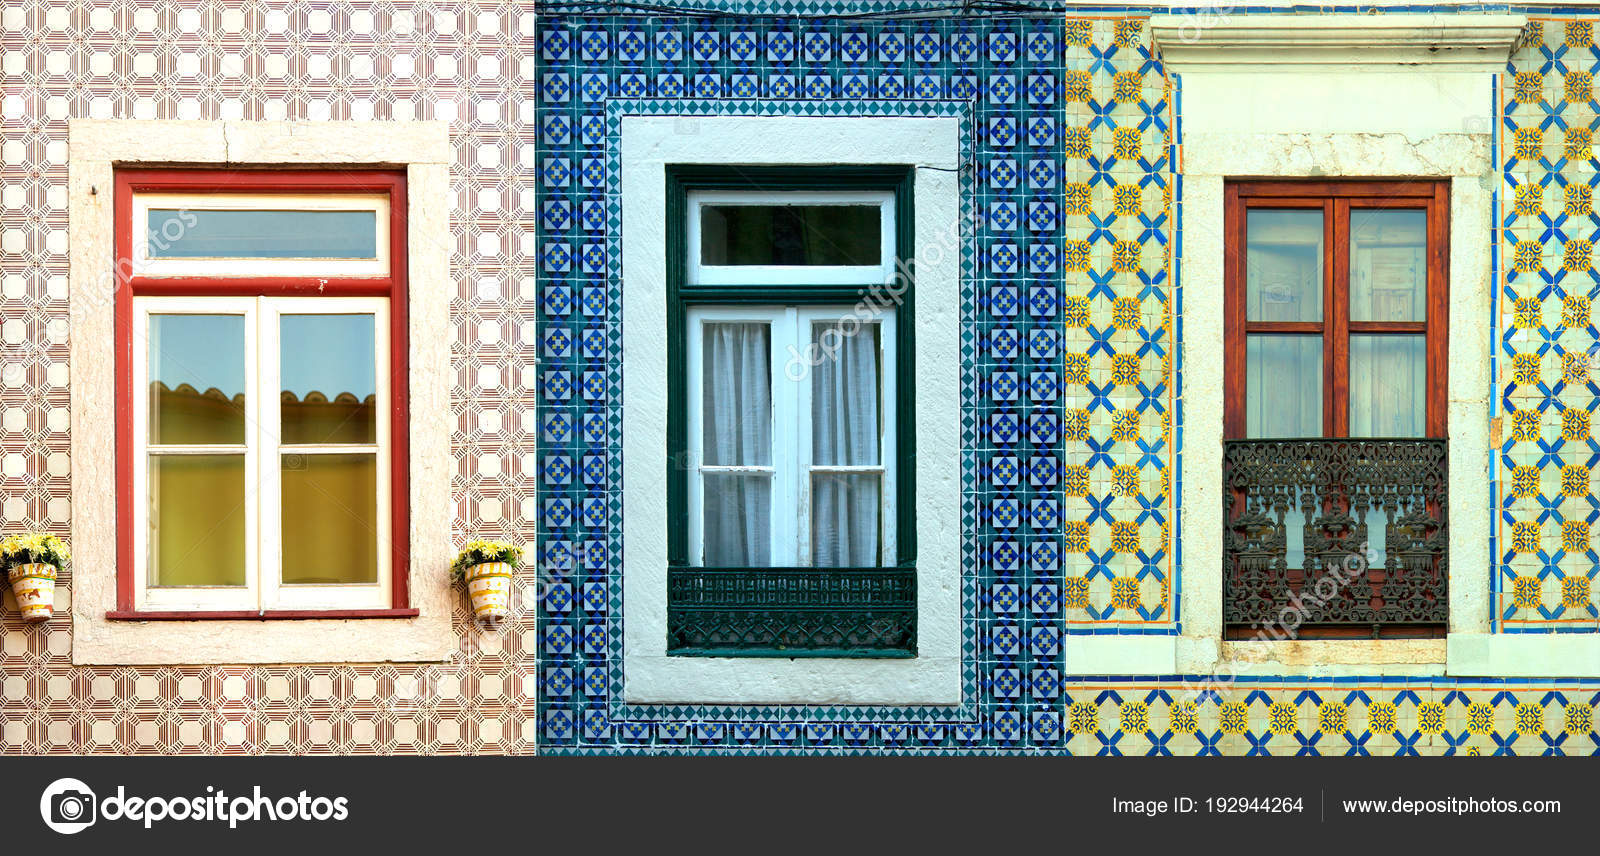 Collage of windows in Portugal with tiles — Stock Photo